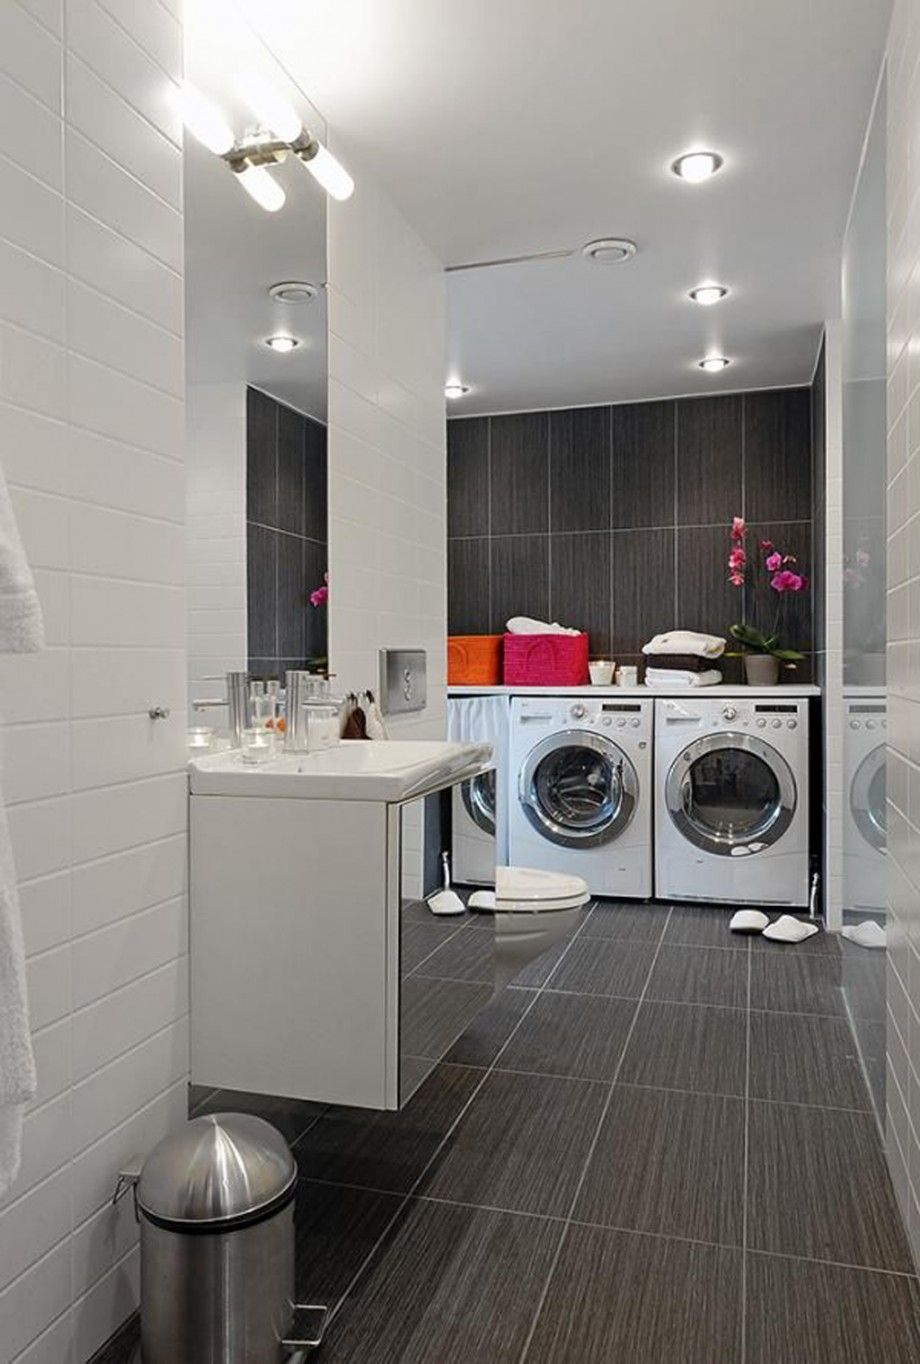 Basement Laundry Room Decorations Ideas And Tips With Images